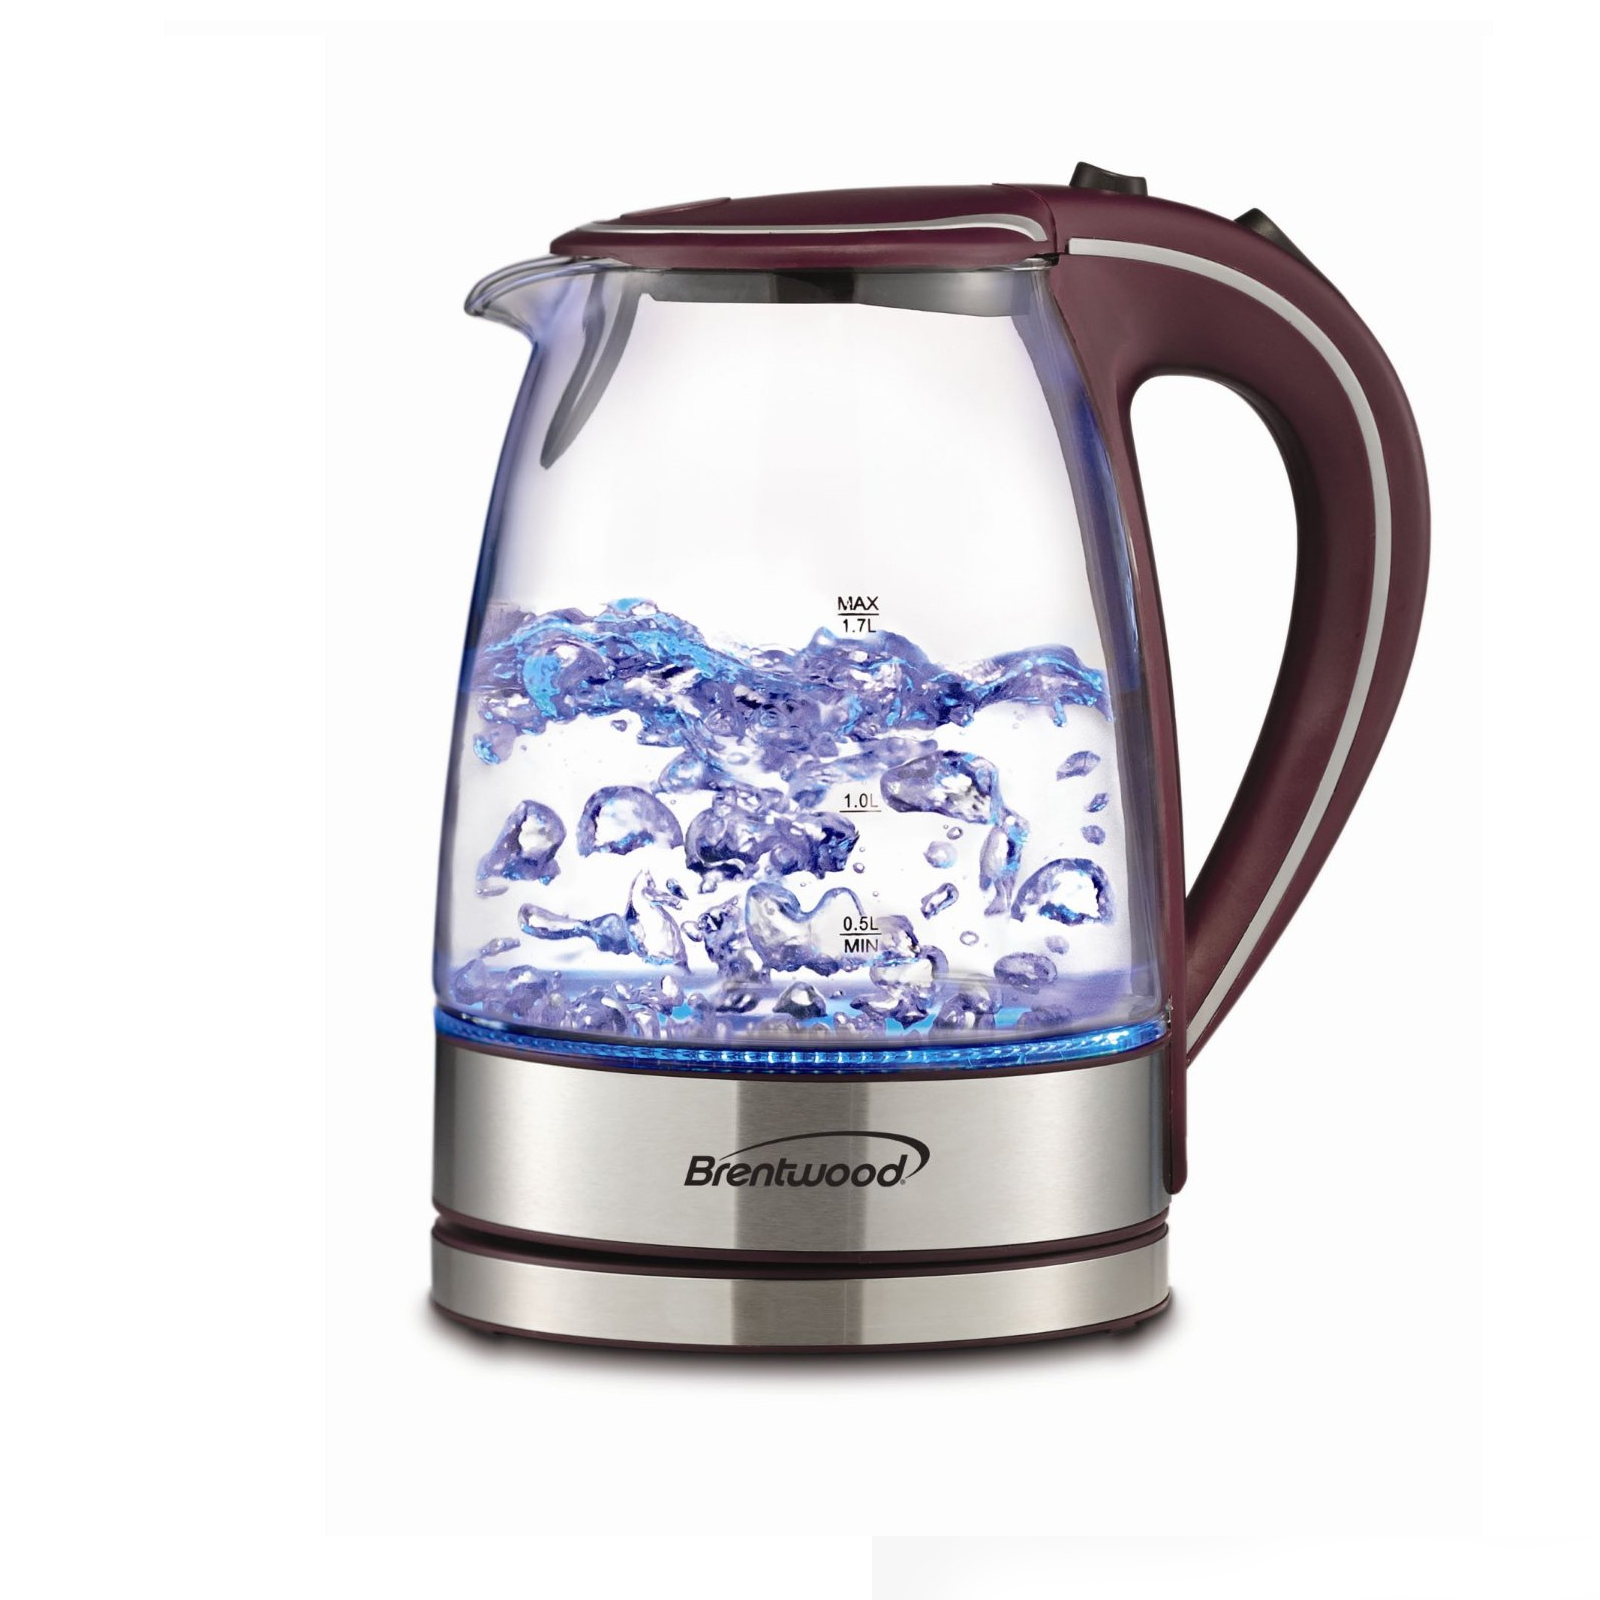 Image of Brentwood 97091209M Tempered Glass Tea Kettles, 1.7-Liter, Purple, Stainless steel